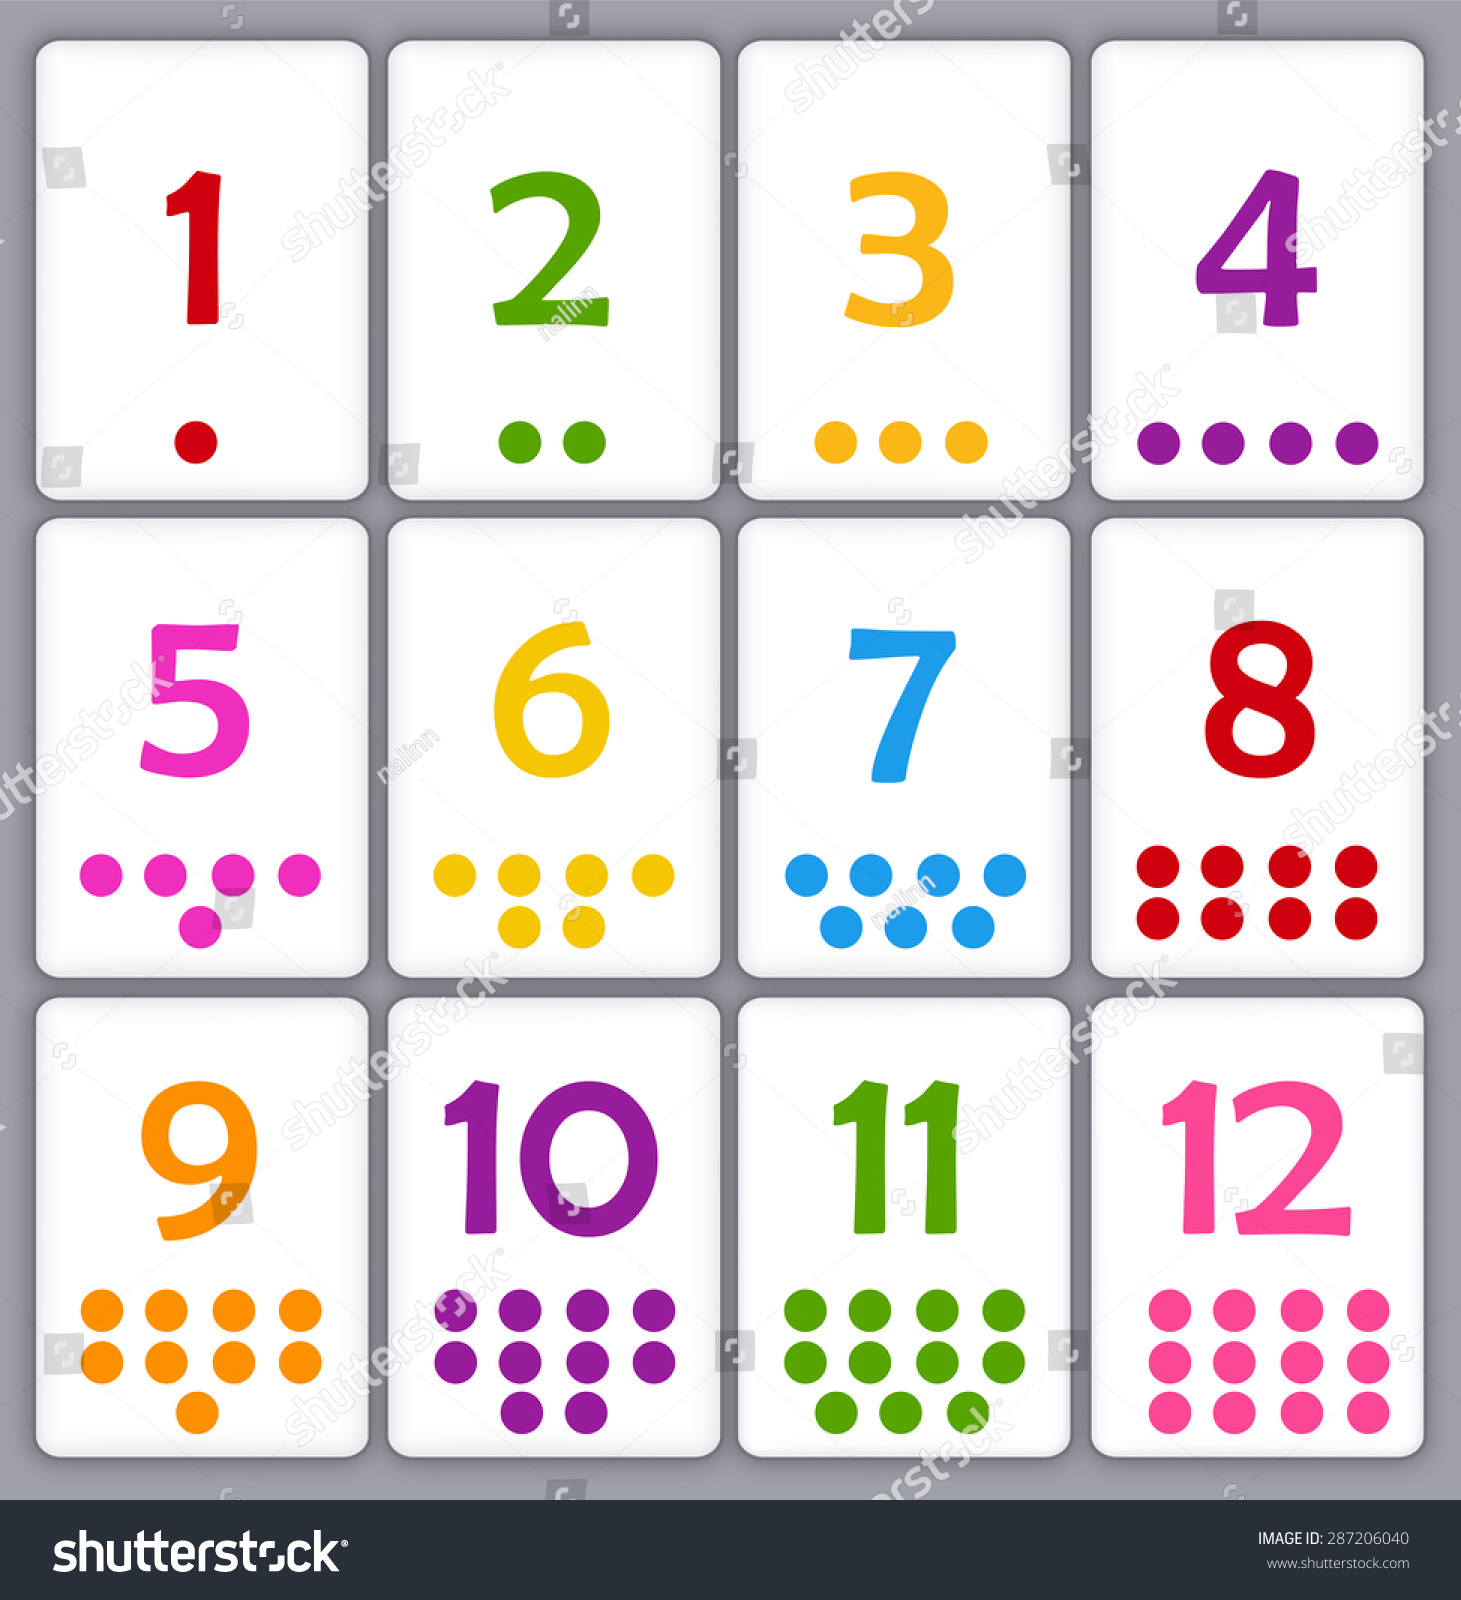 Printable Flash Card Collection For Numbers With Dots For